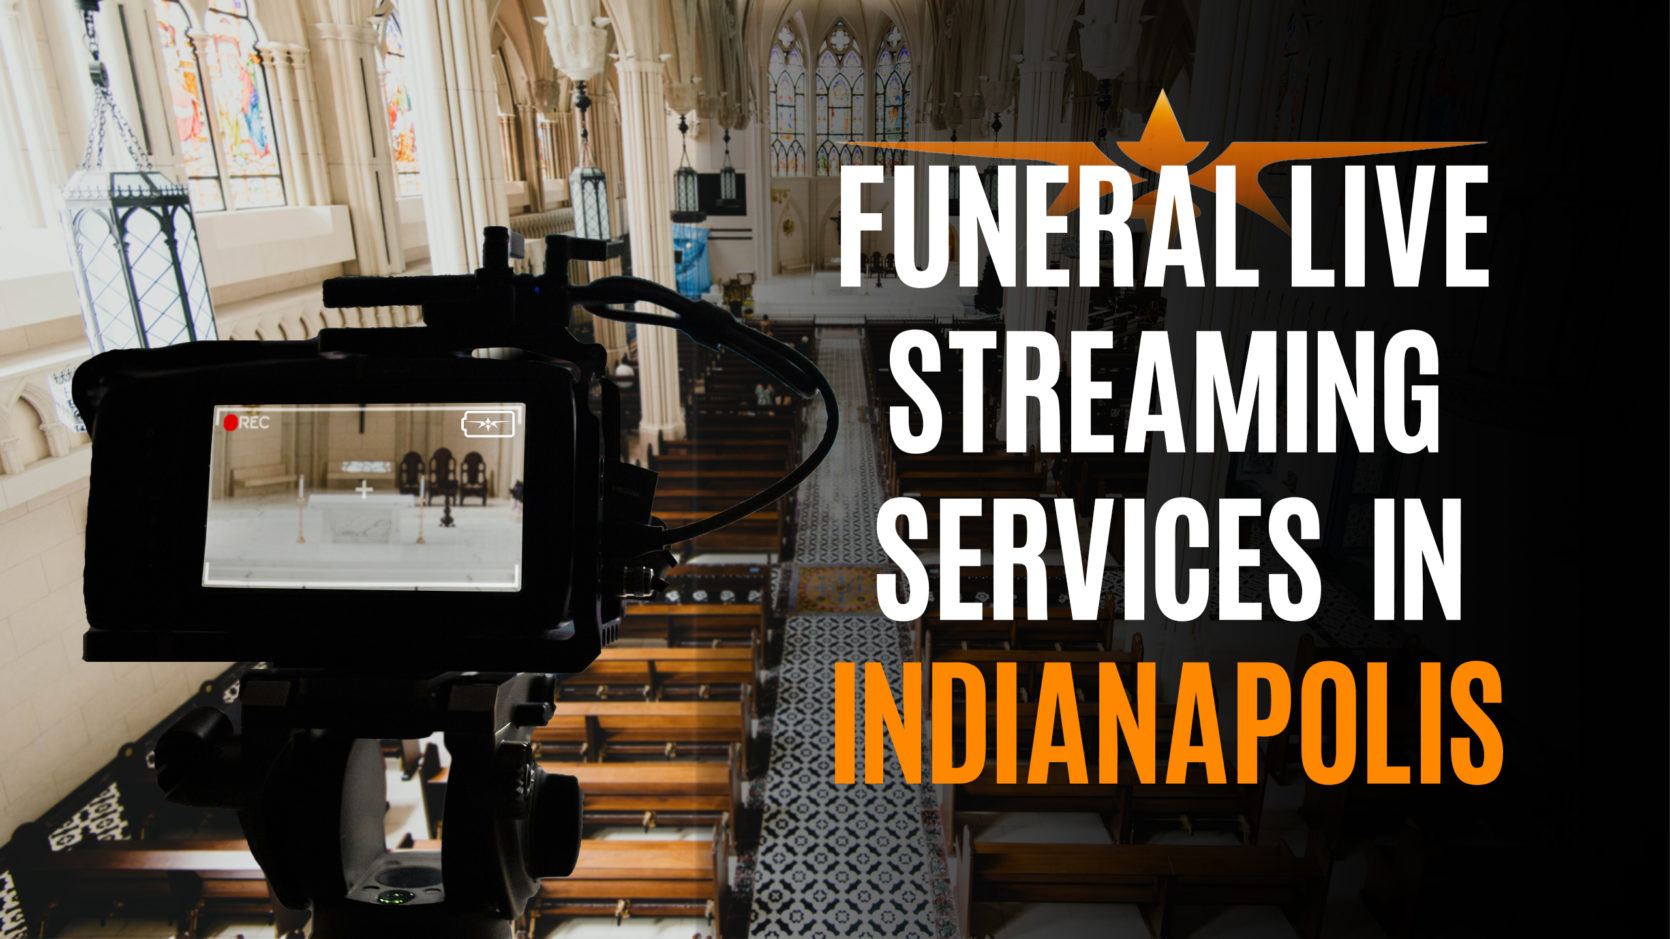 Funeral Live Streaming Services in Indianapolis